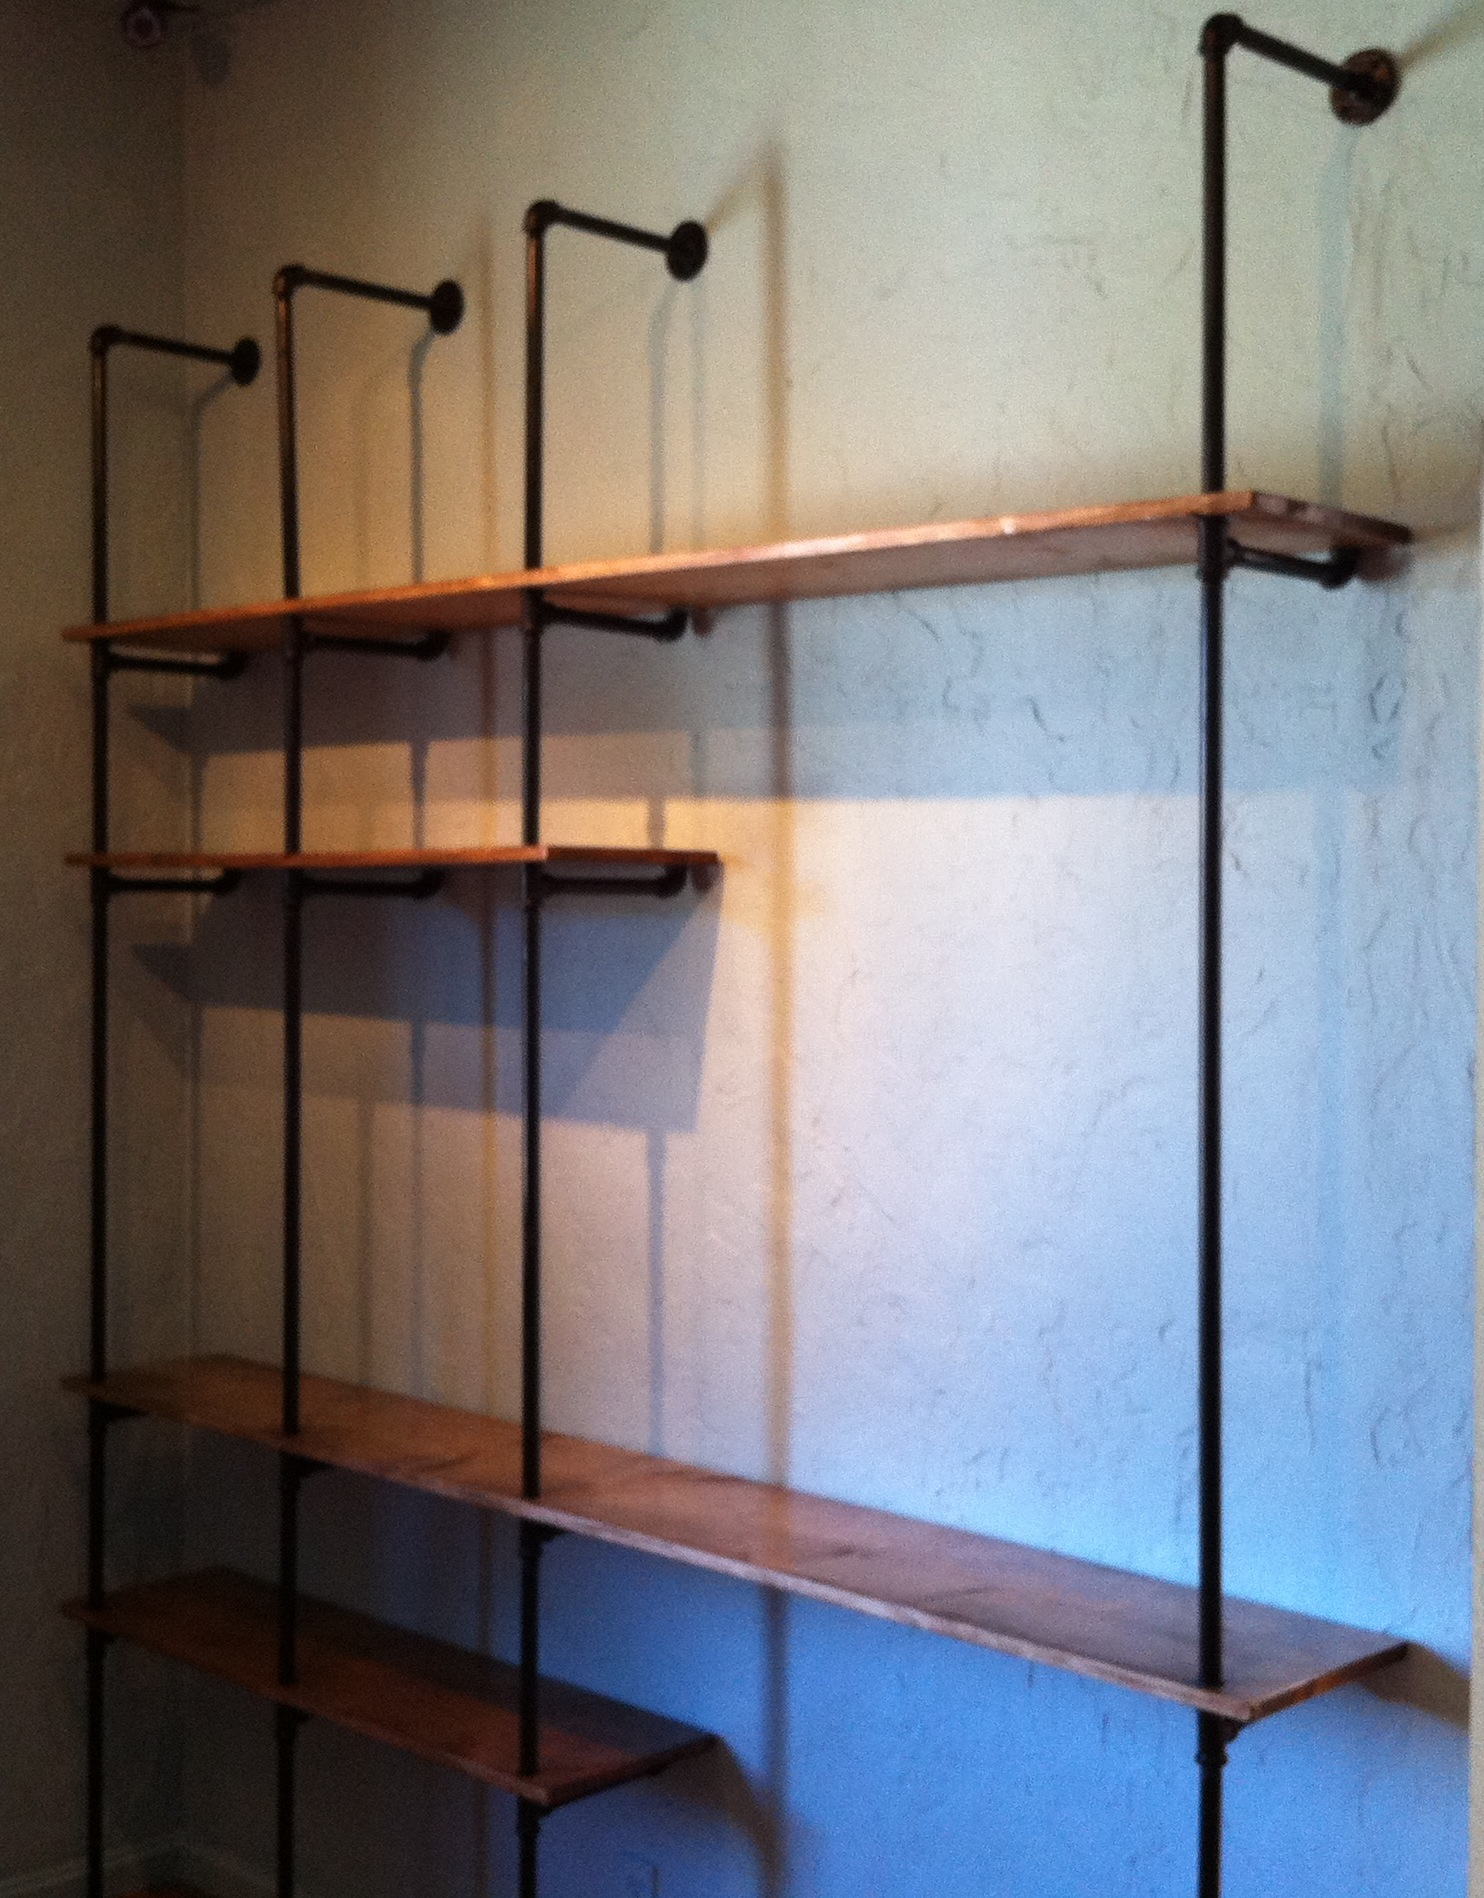 Pipe shelving unit at Oddyssea Half Moon Bay